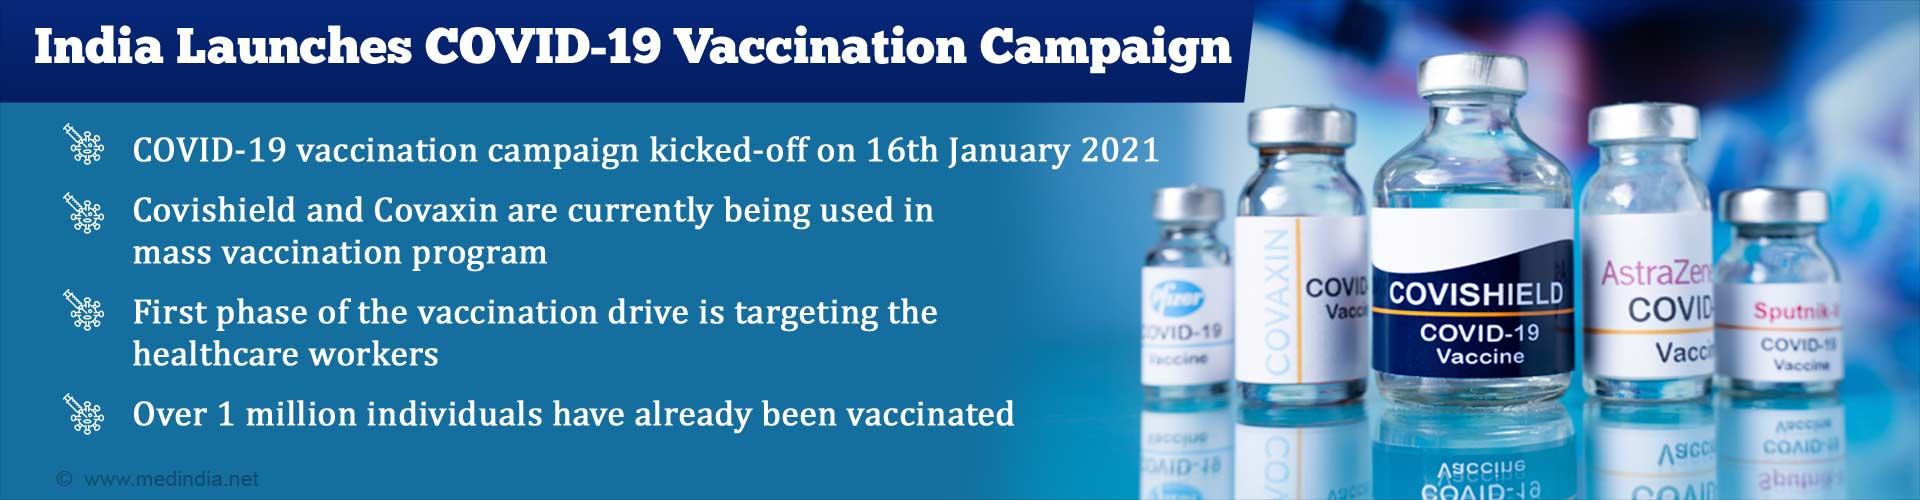 COVID-19 Vaccination in India: Issues and Challenges